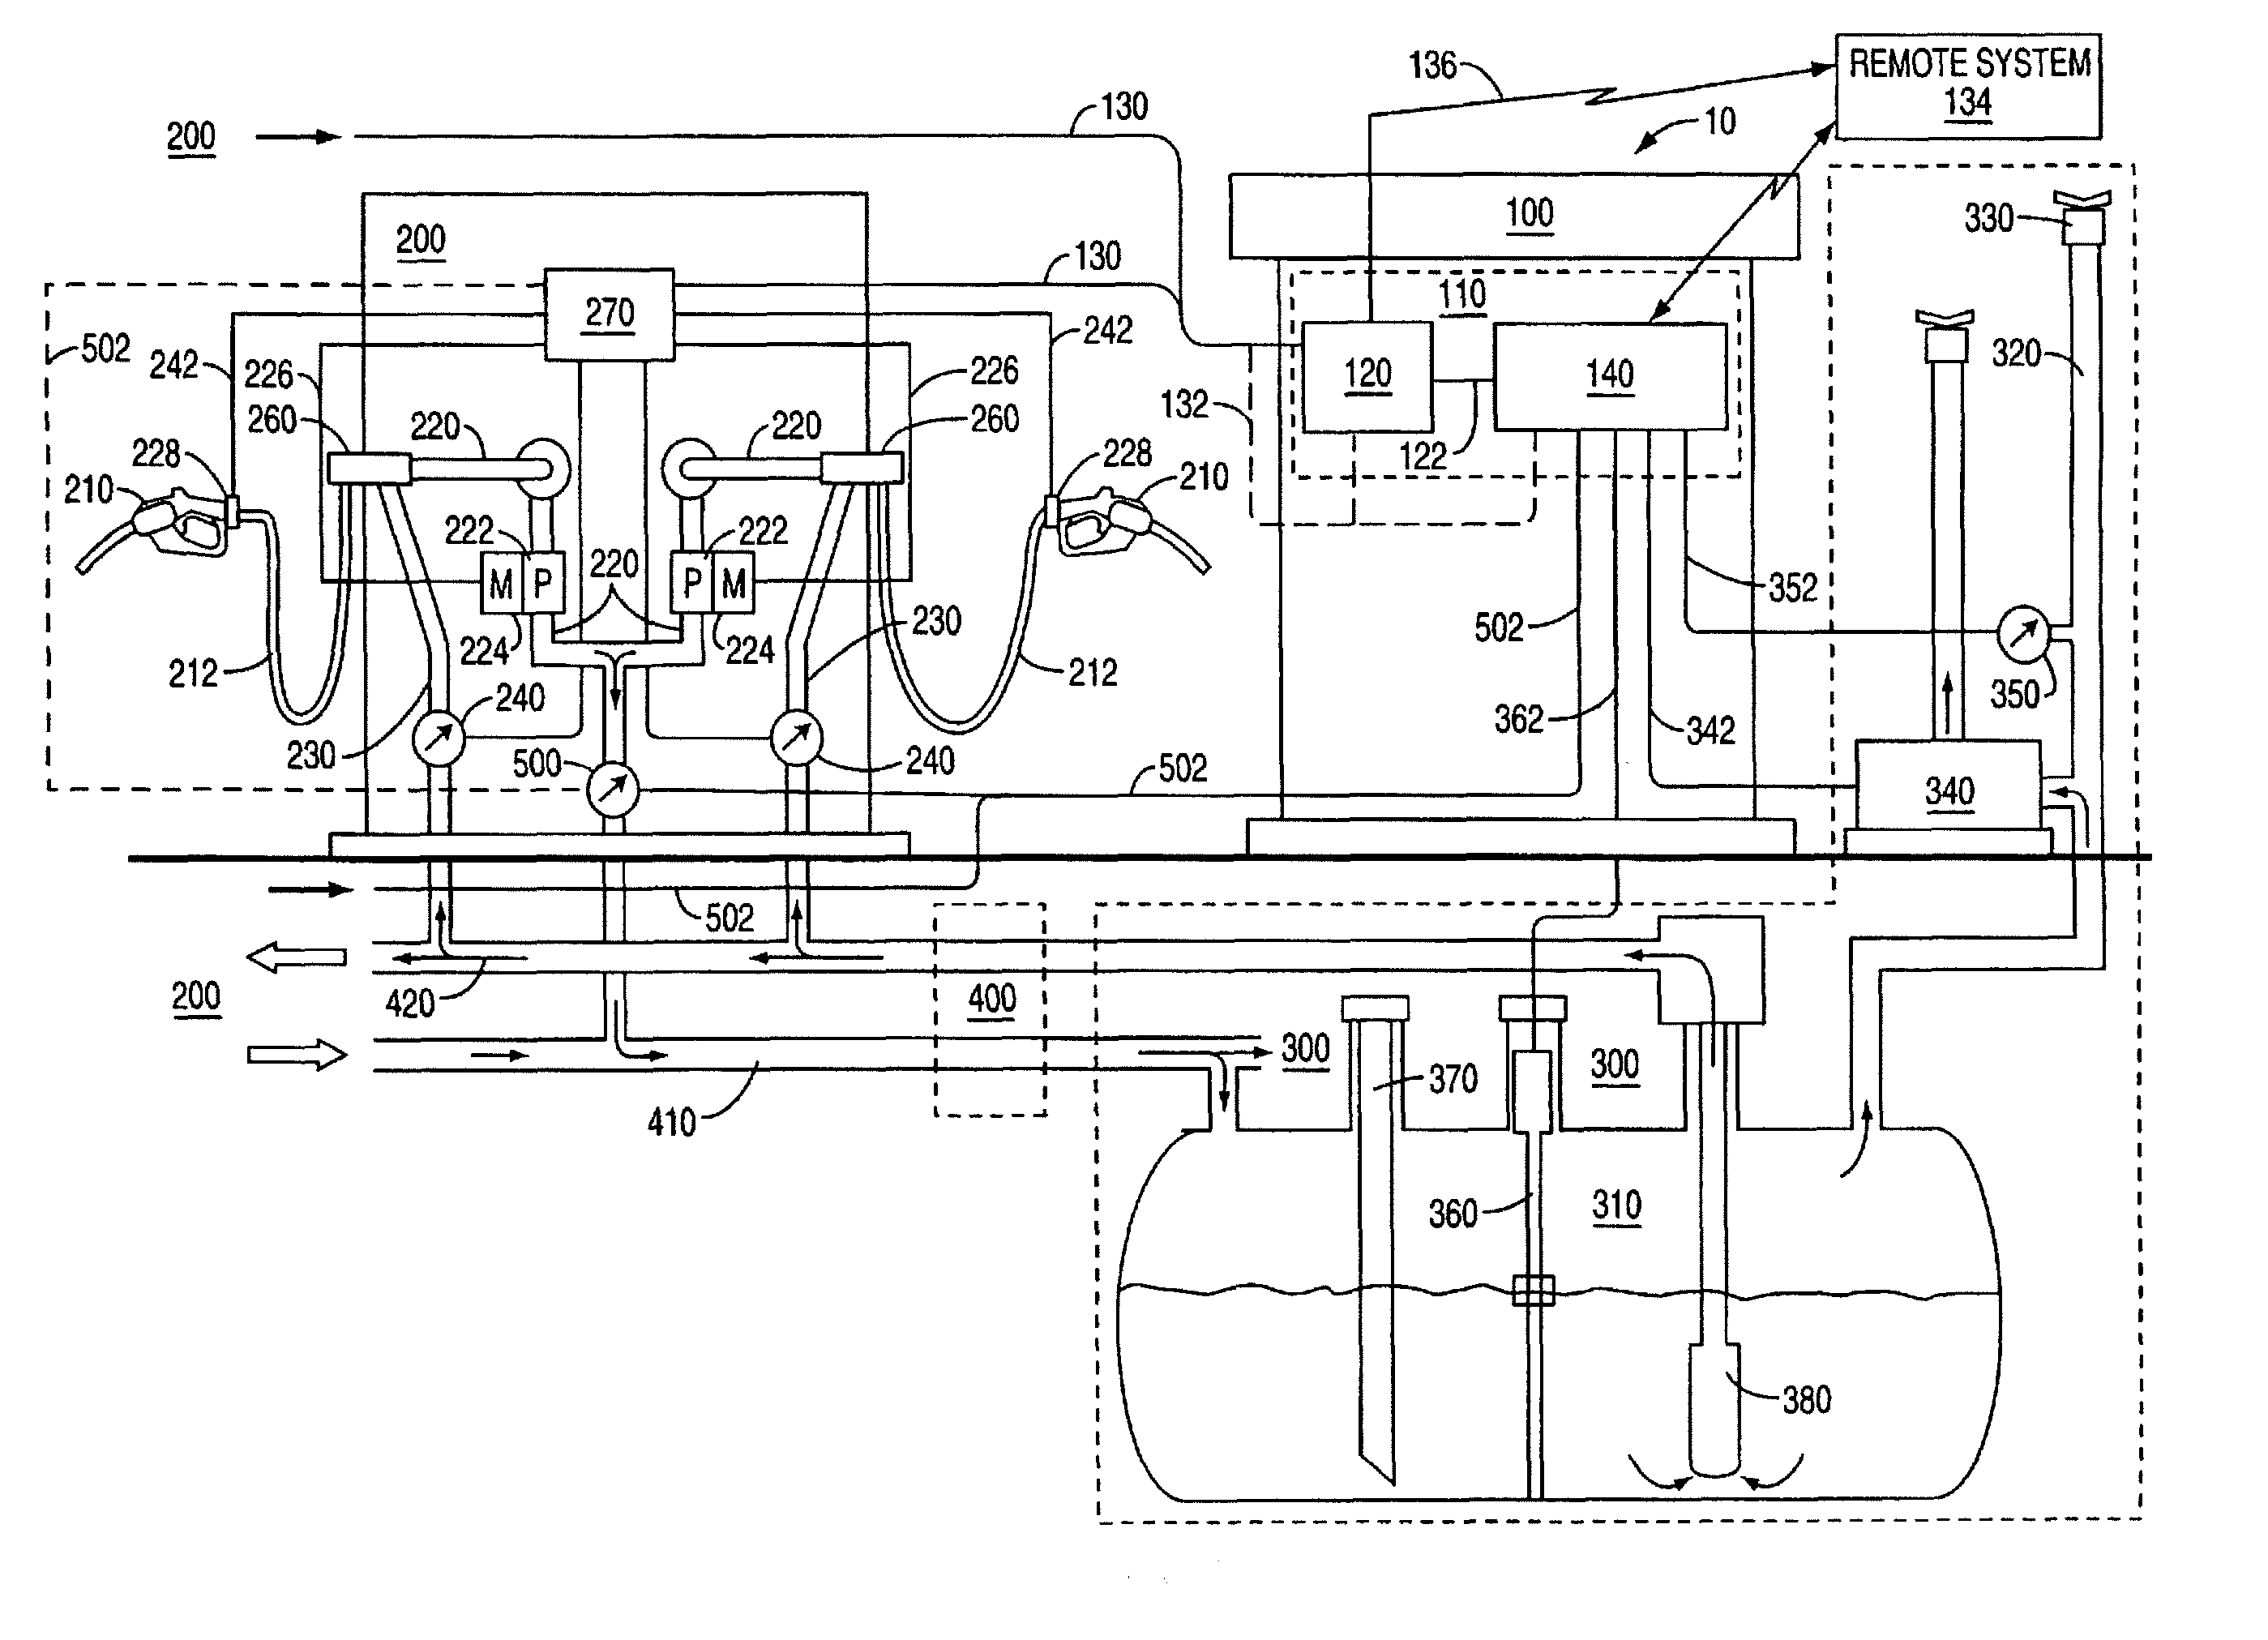 mpd1 cable wiring diagram gilbarco